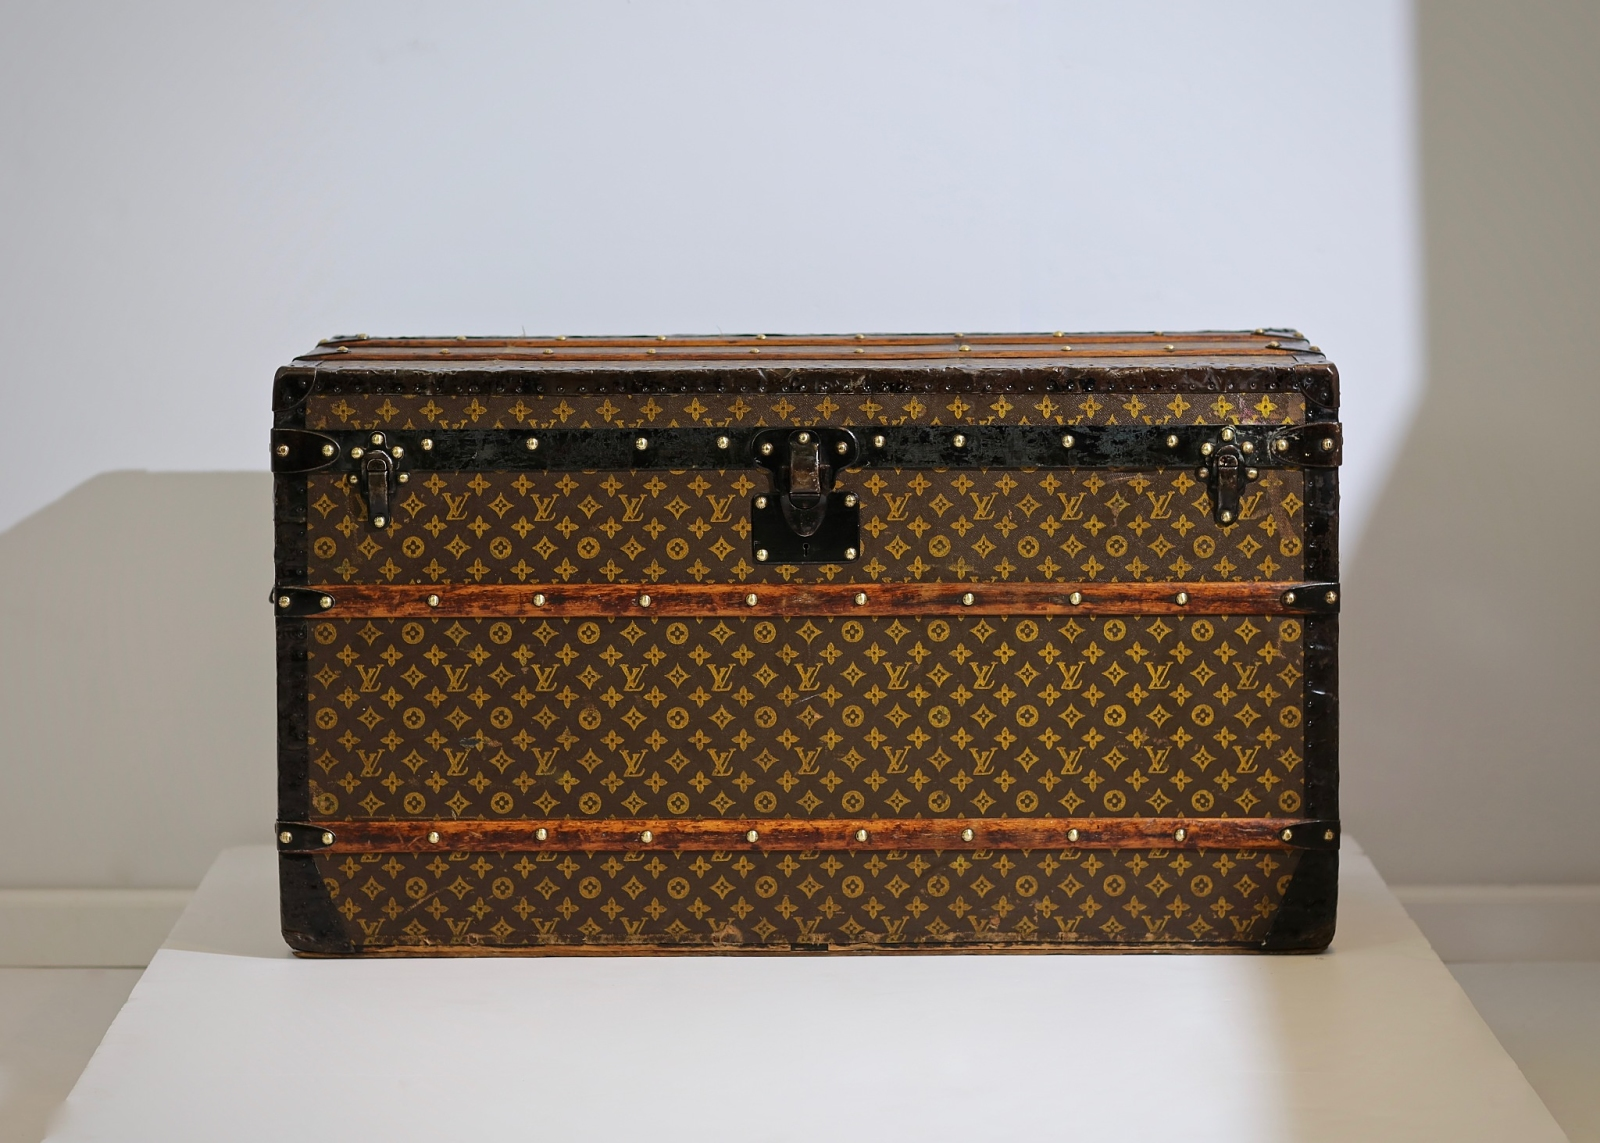 aveled-trunk-louis-vuitton-thumbnail-product-5669-1